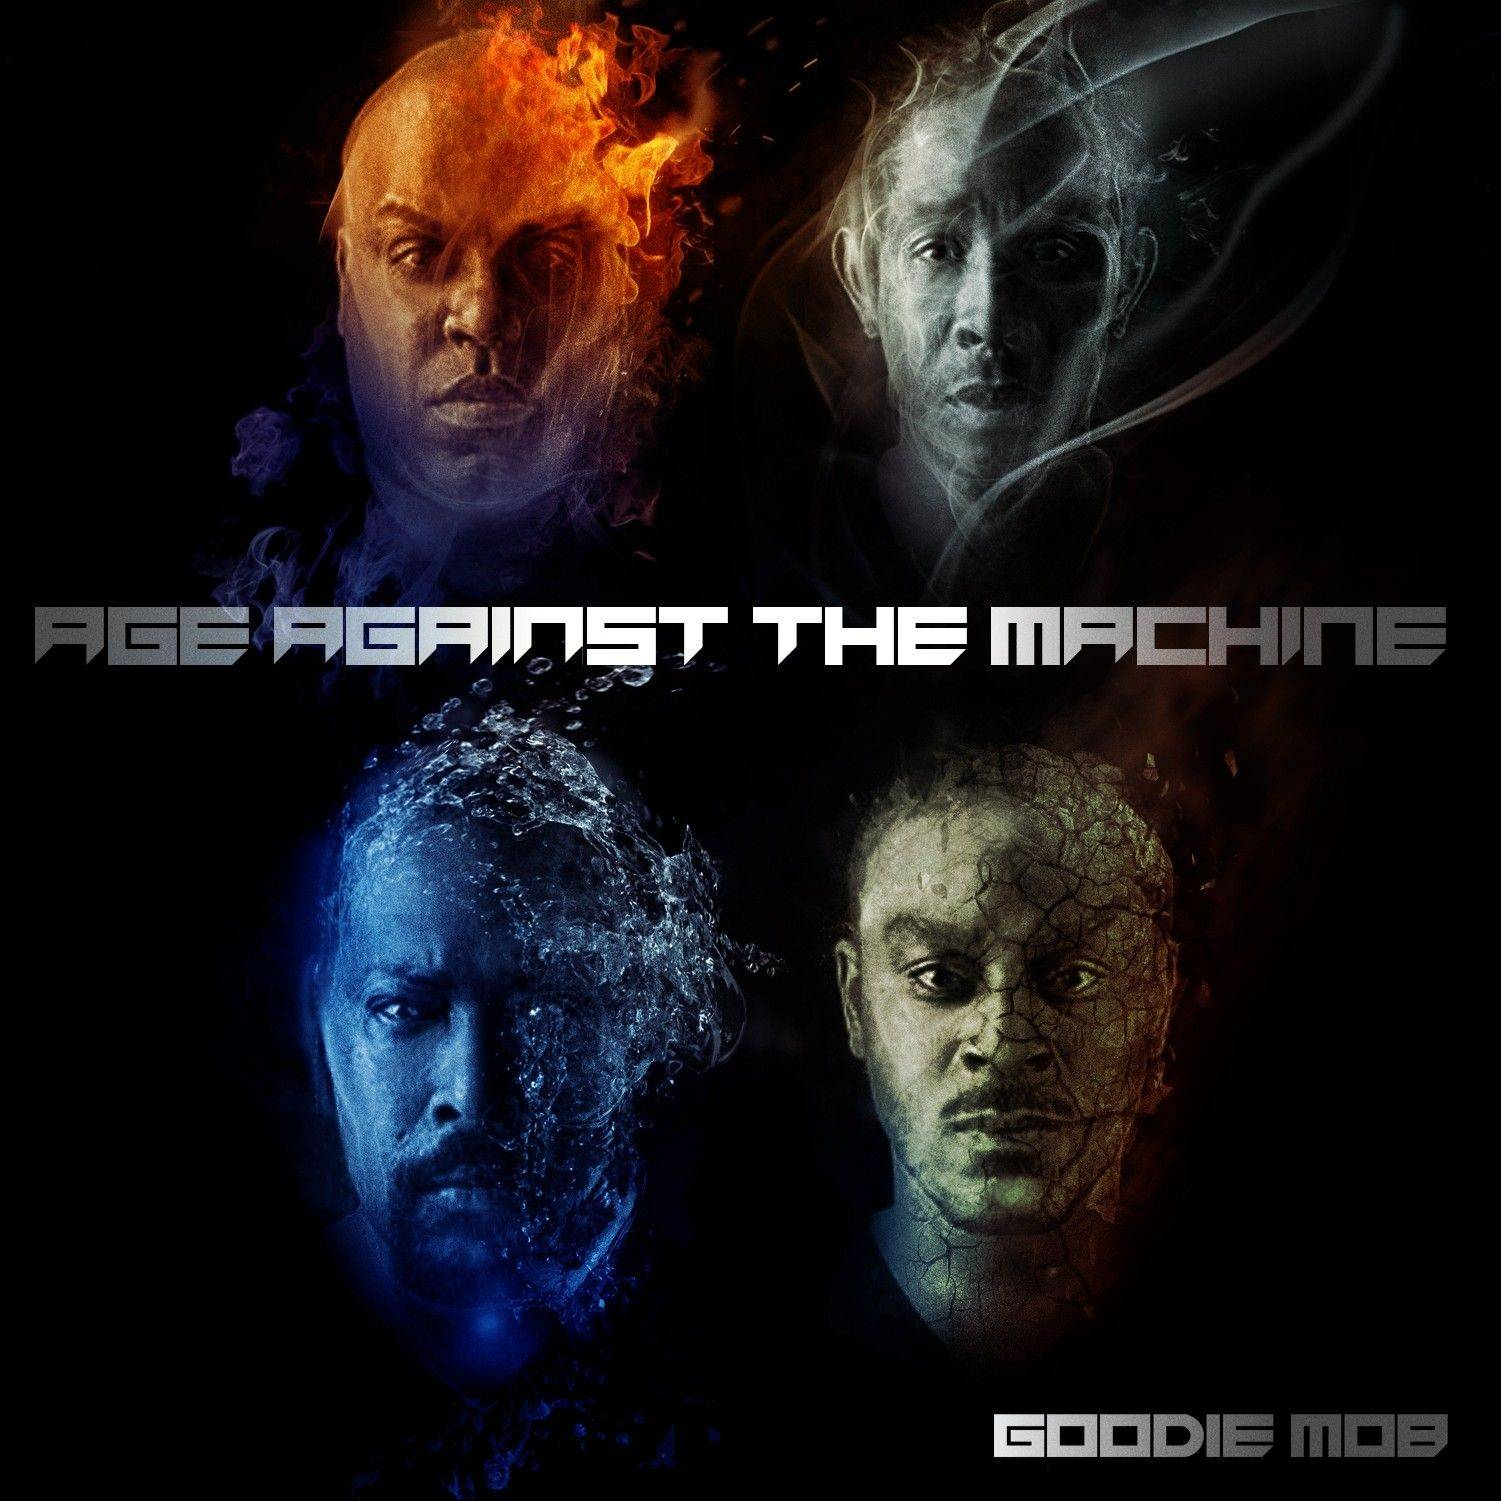 """Age Against the Machine"" by Goodie Mob"